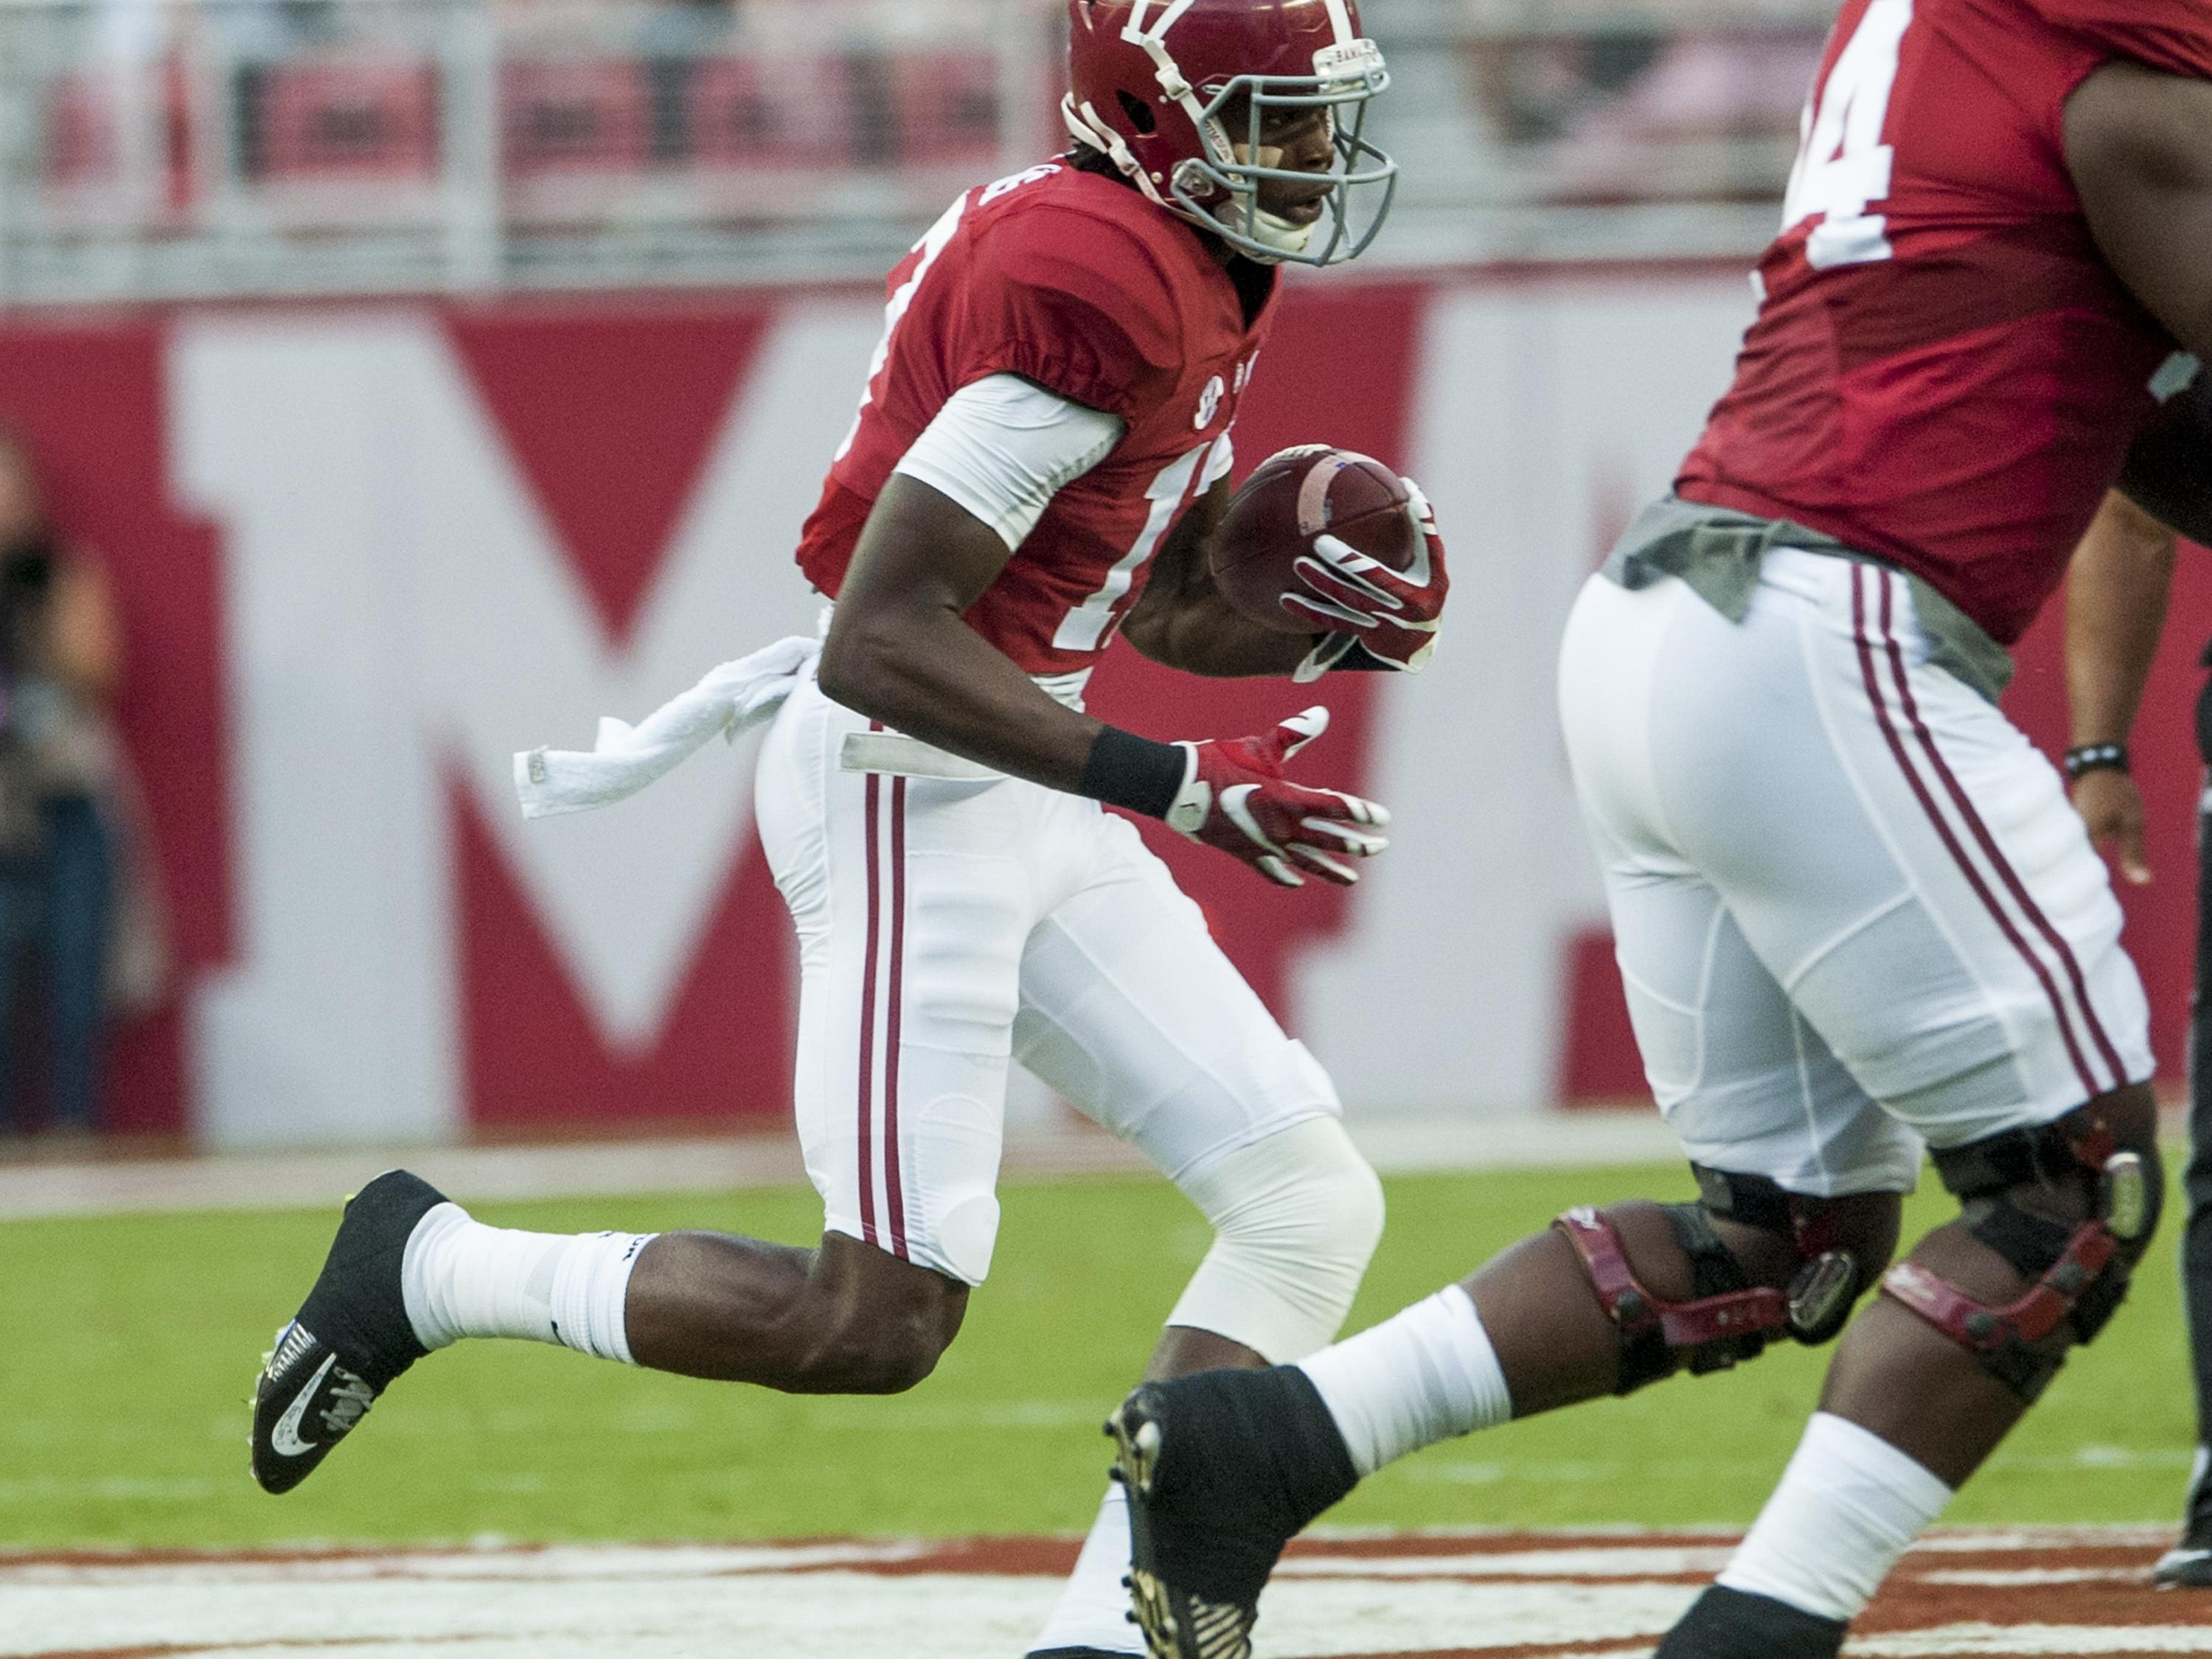 Alabama wide receiver Cam Sims (17) against Kentucky at Bryant-Denny Stadium in Tuscaloosa, Ala., on Saturday October 1, 2016.